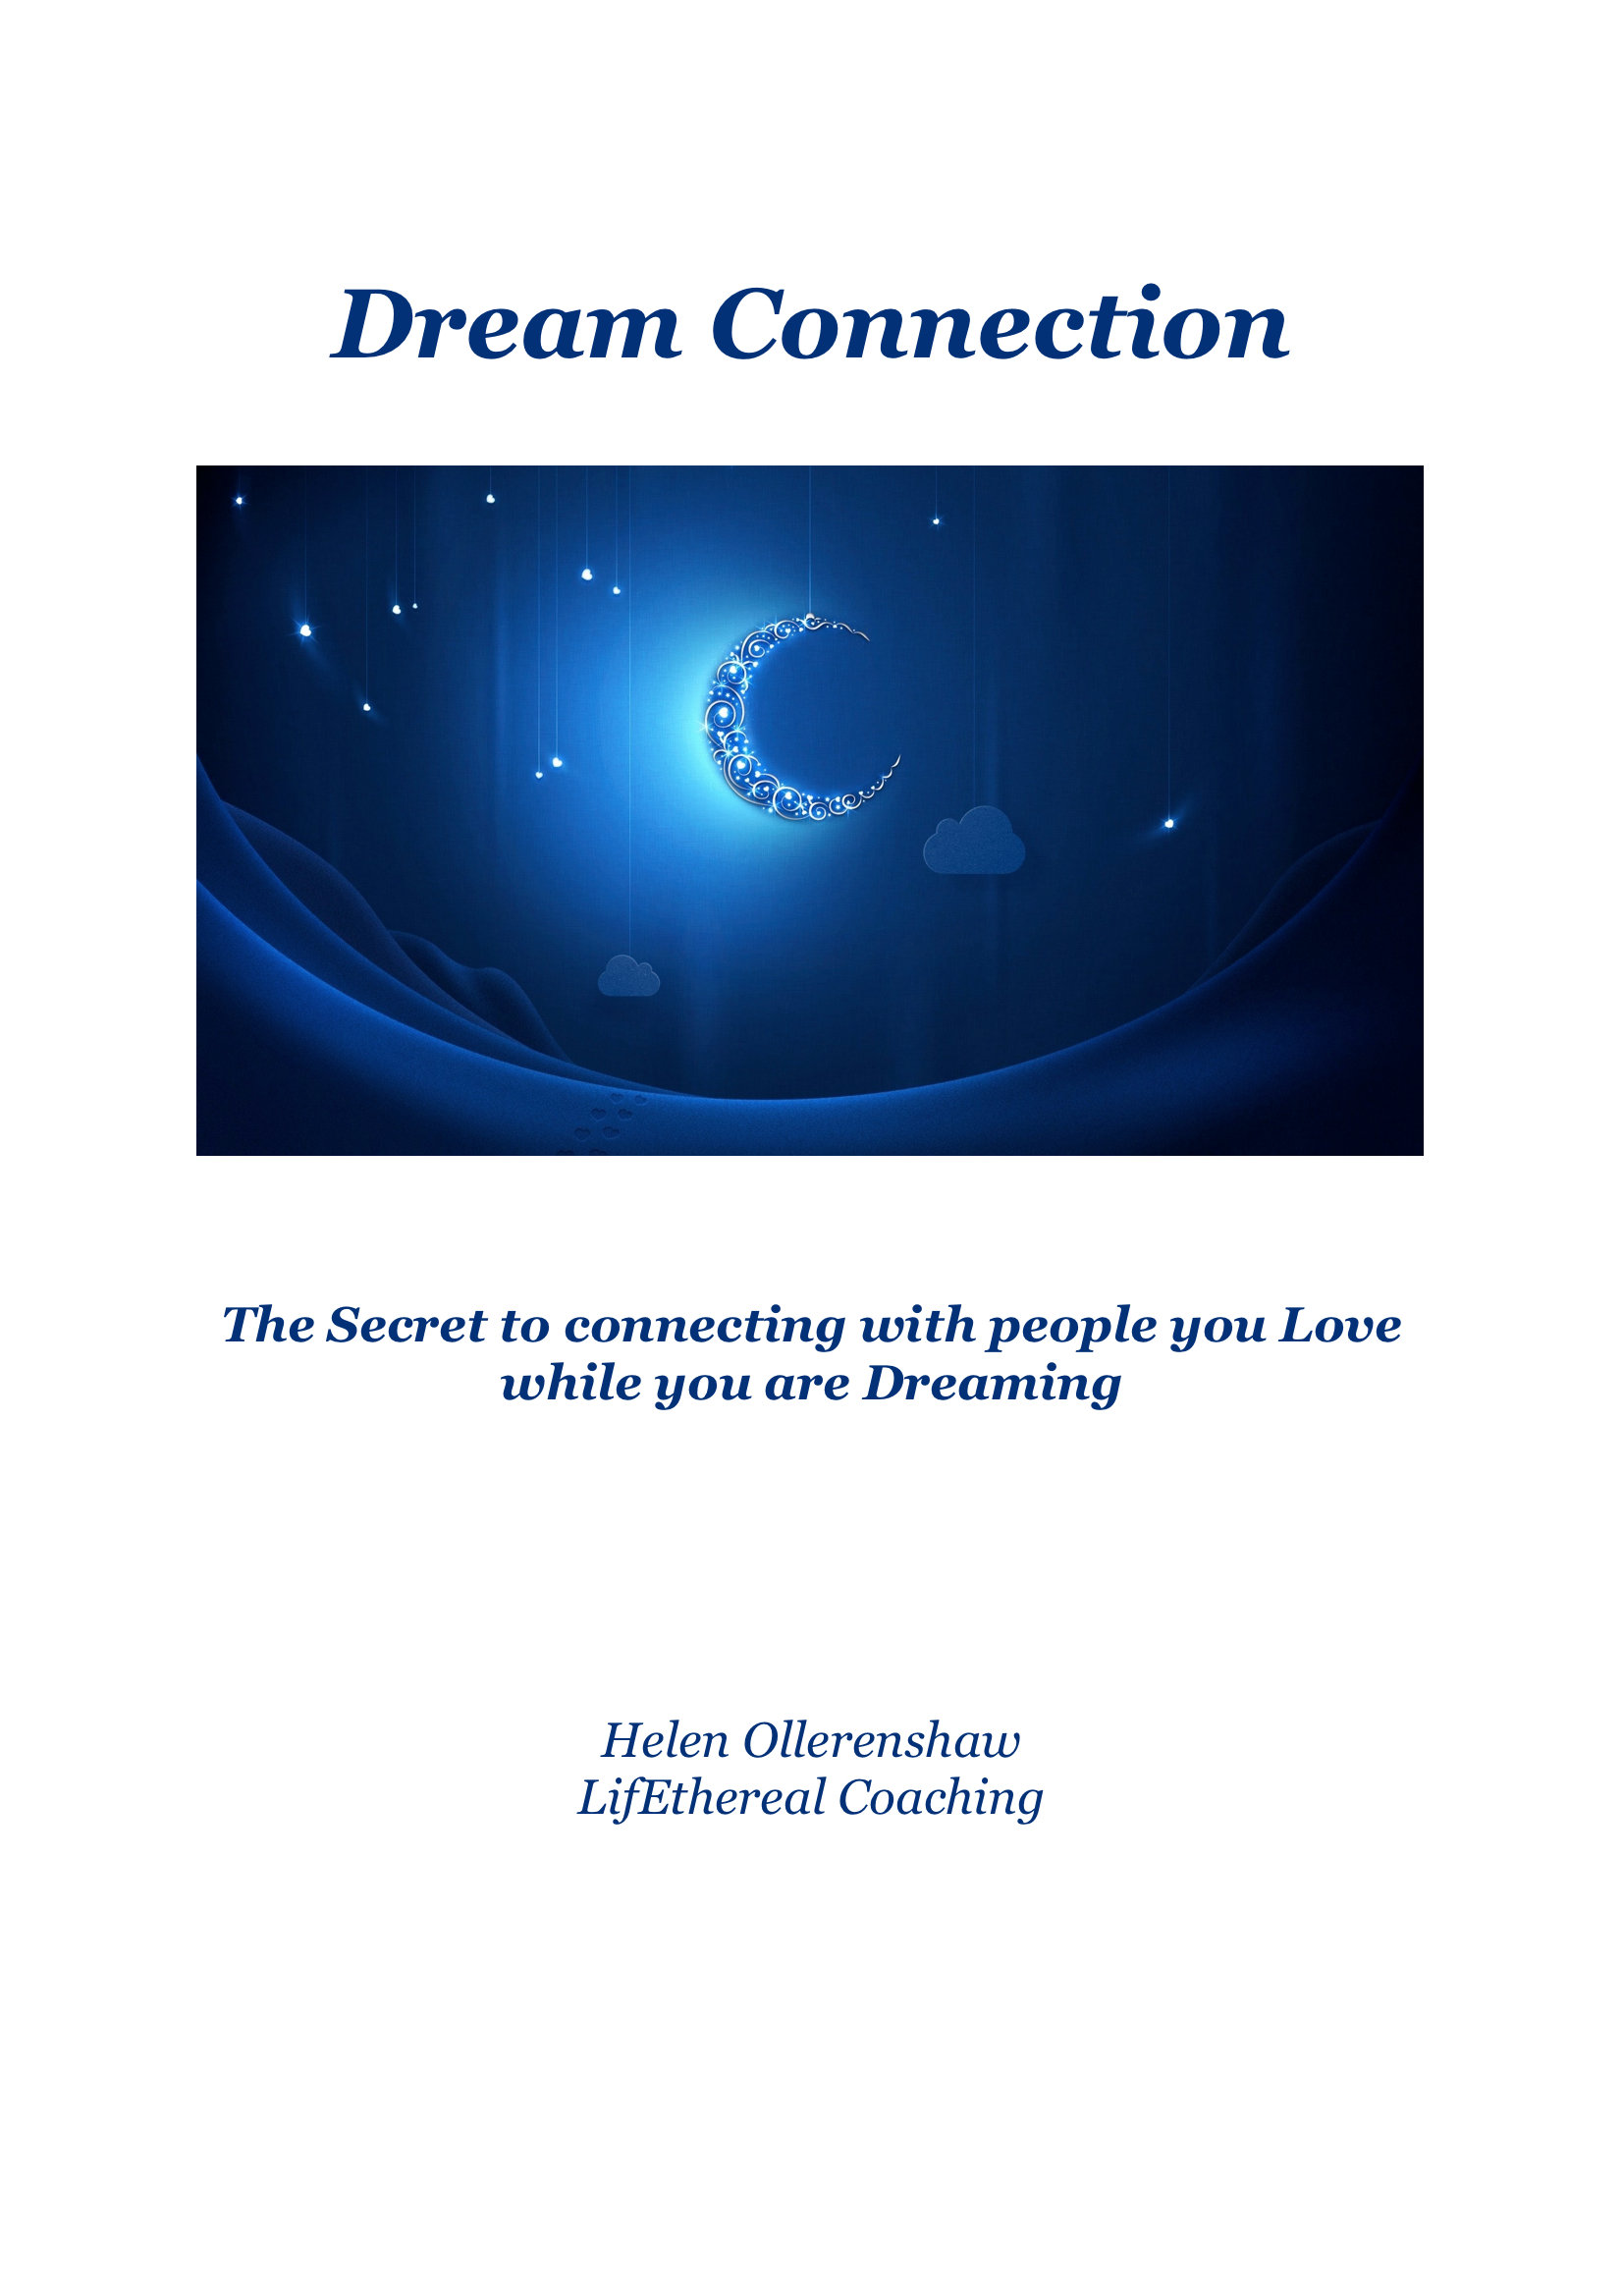 Dream Connection - The Secret to Connecting with people you Love while  you Dream. 00003